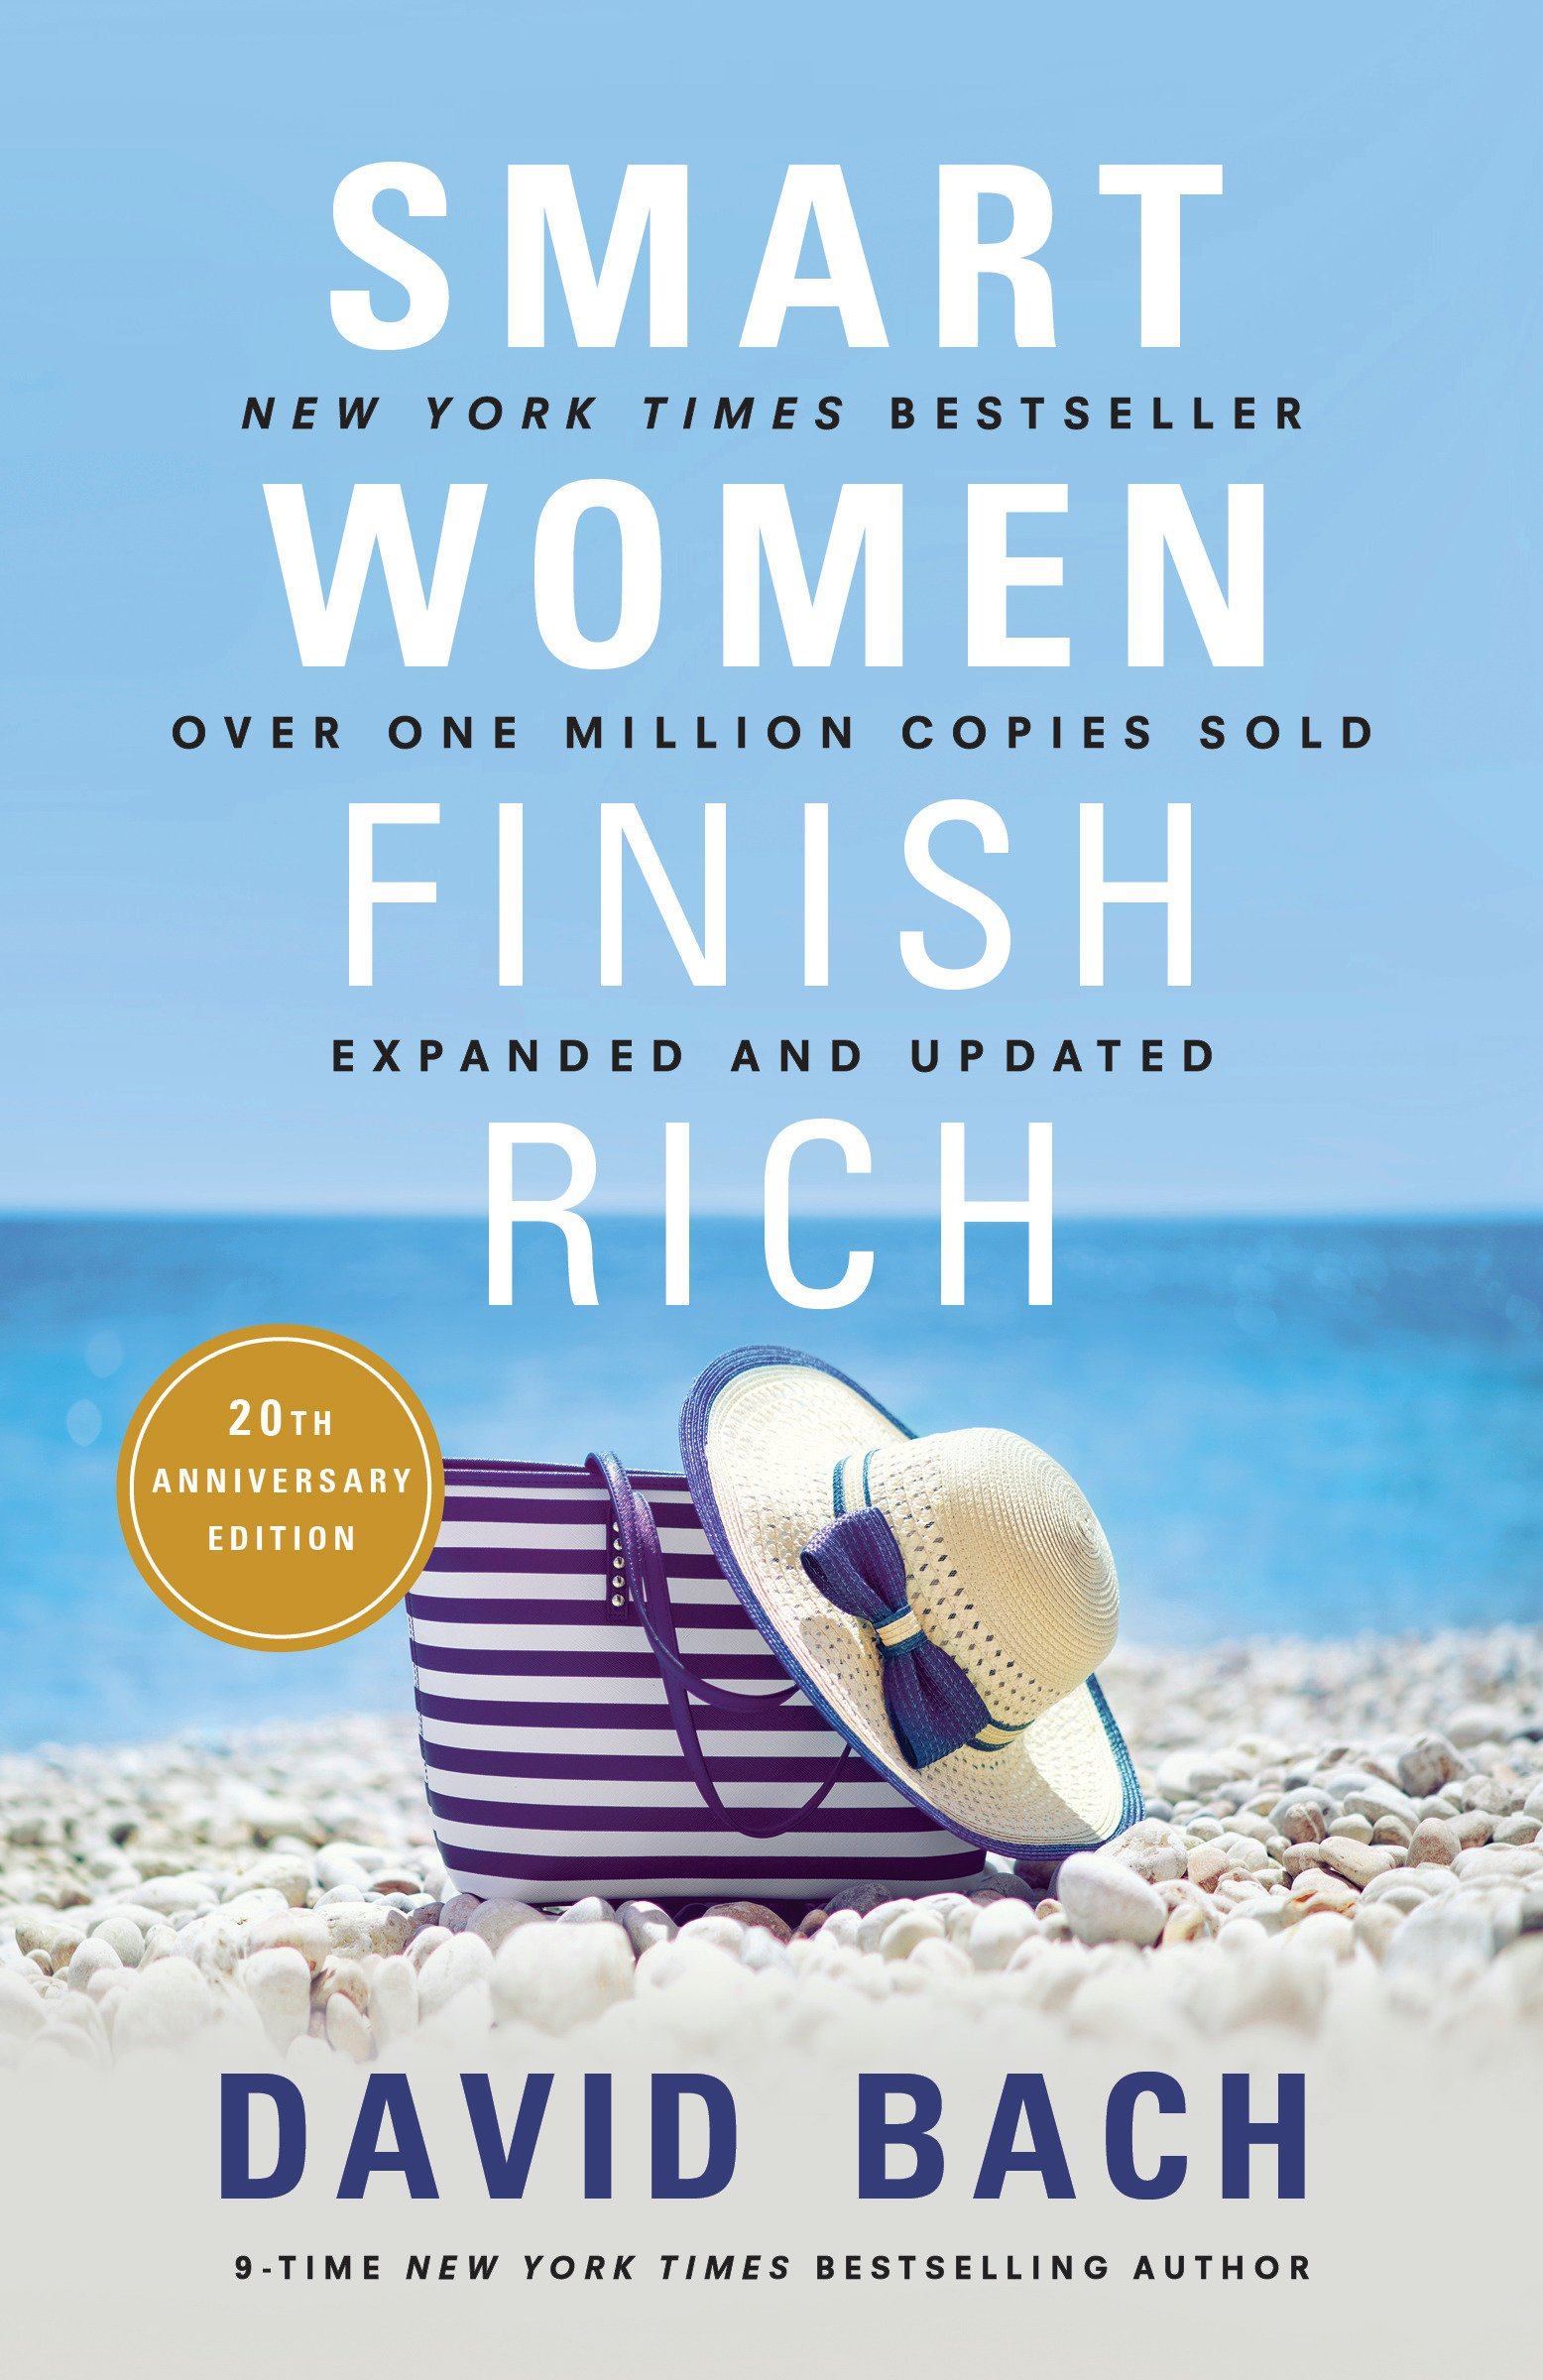 Smart Women Finish Rich, Expanded and Updated: Bach, David: 9780525573043:  Amazon.com: Books